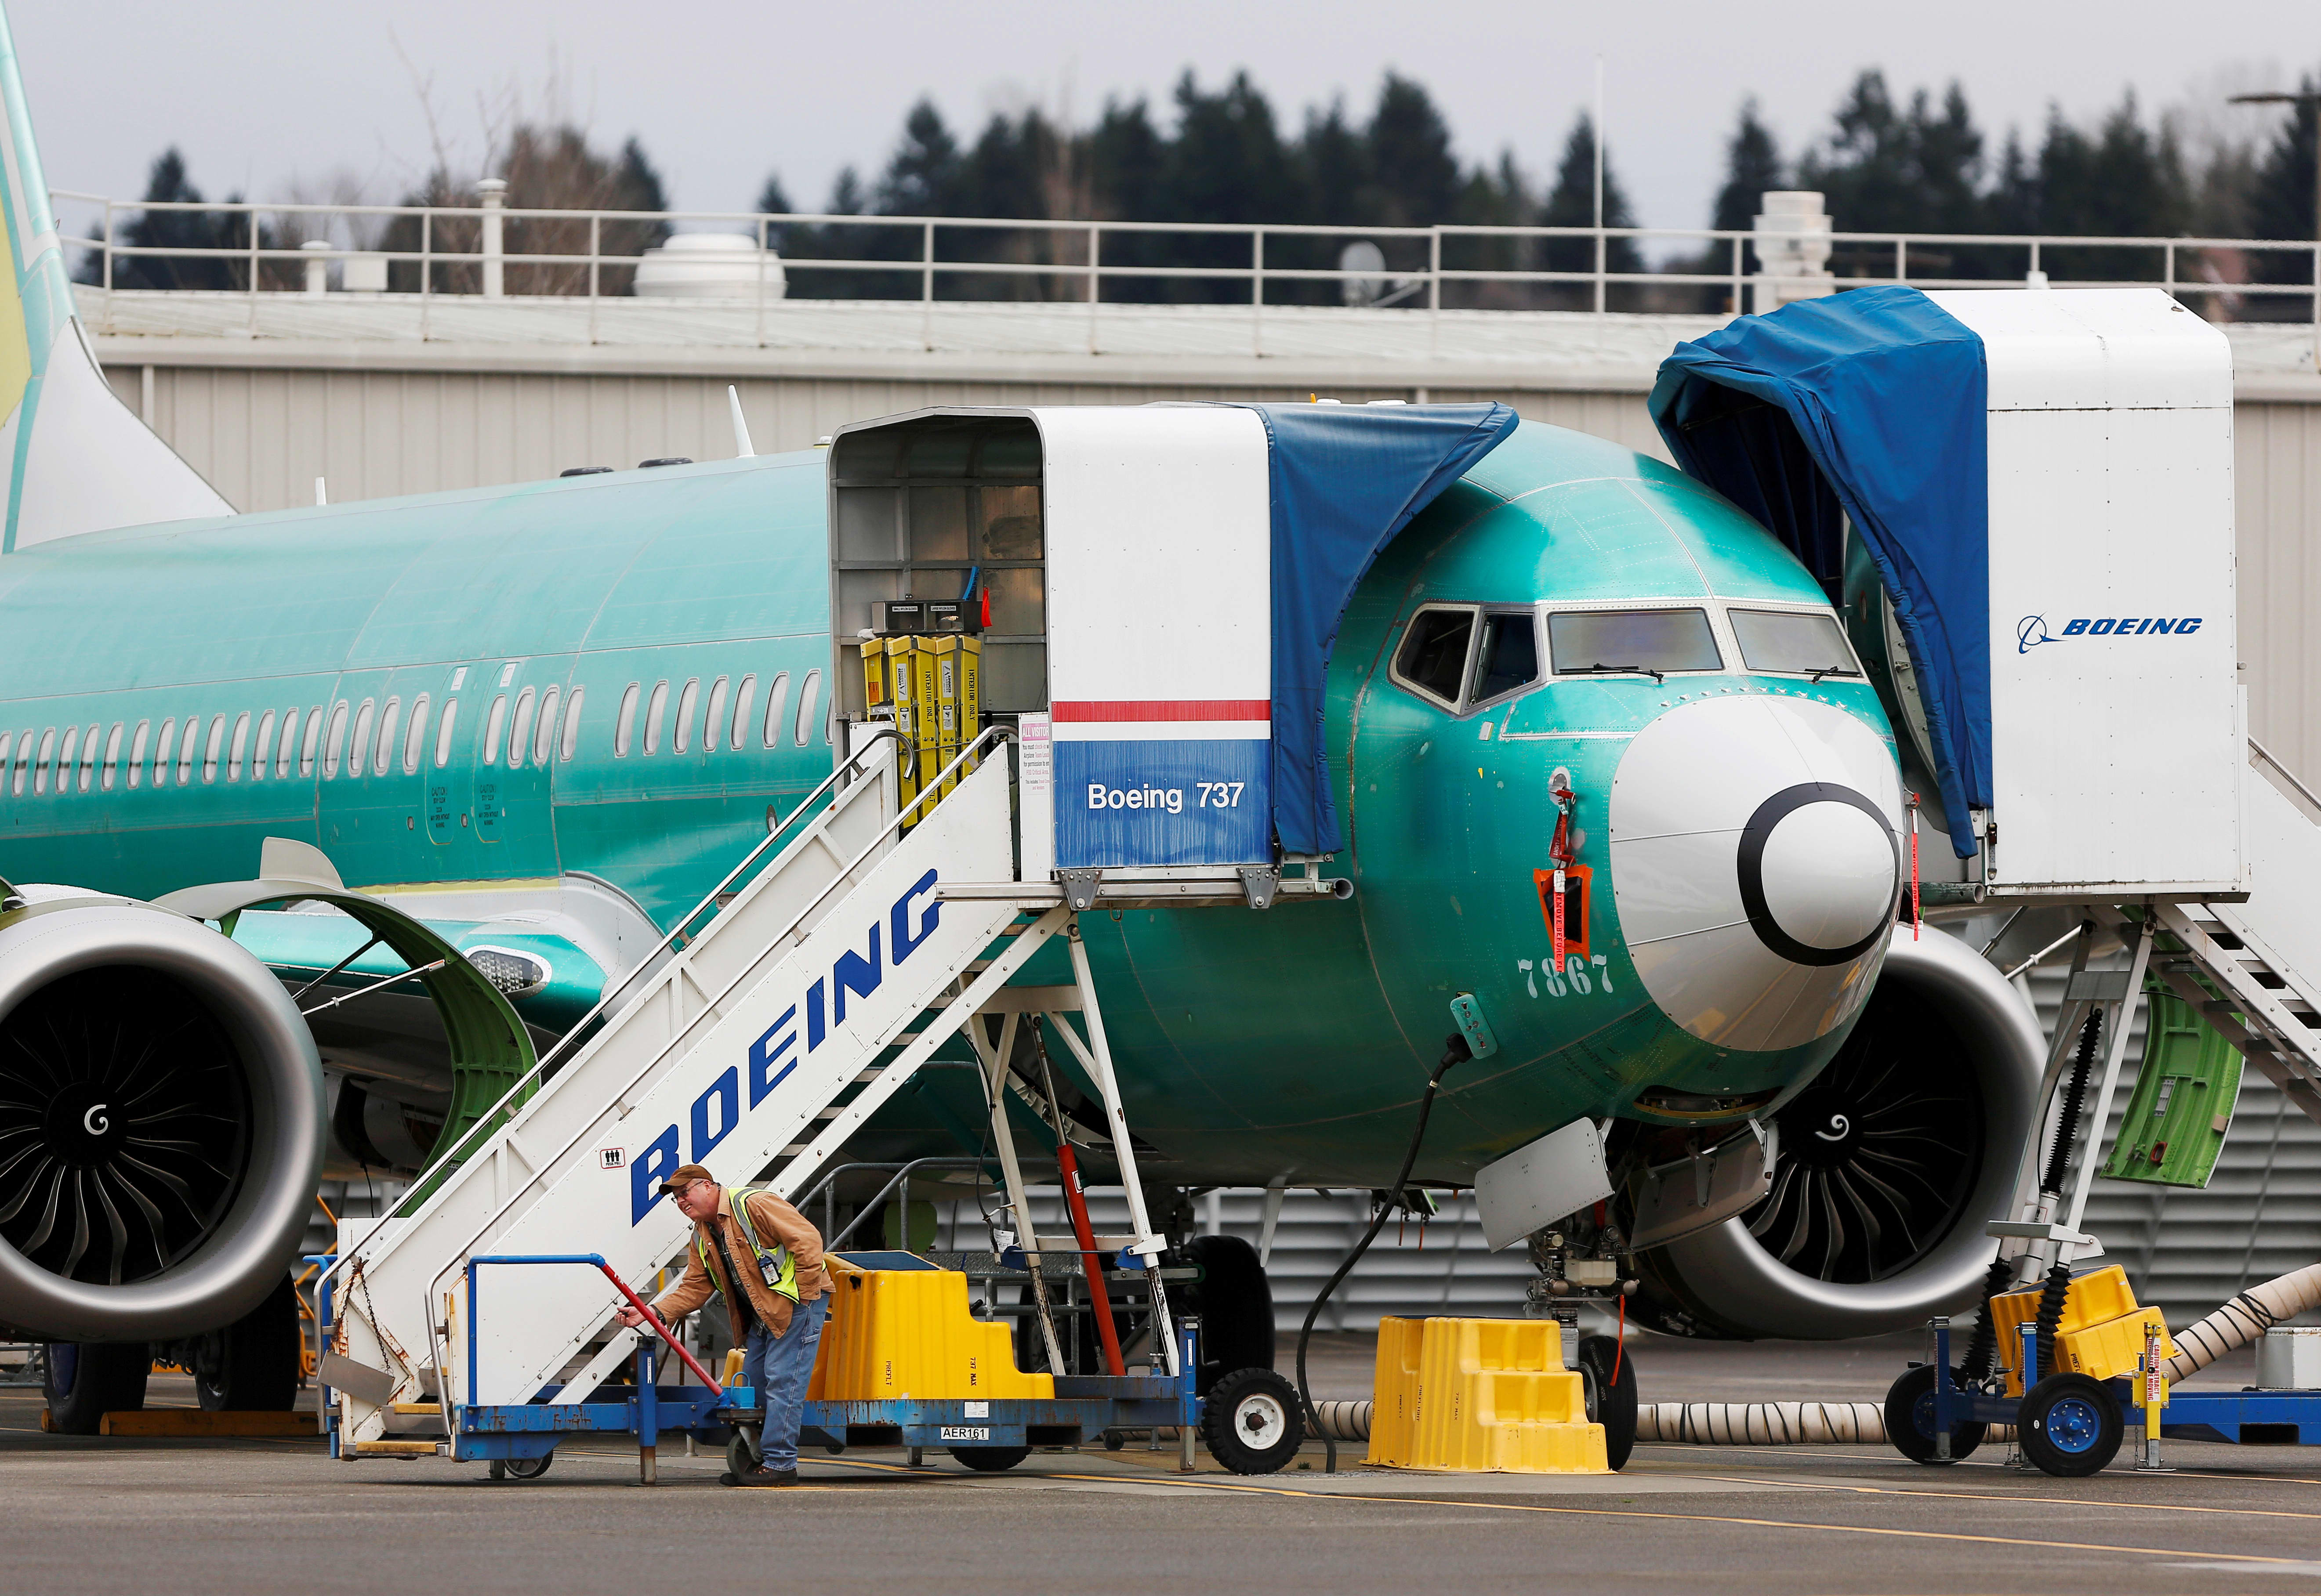 DOT panel calls for more oversight after review of Boeing 737 Max approval